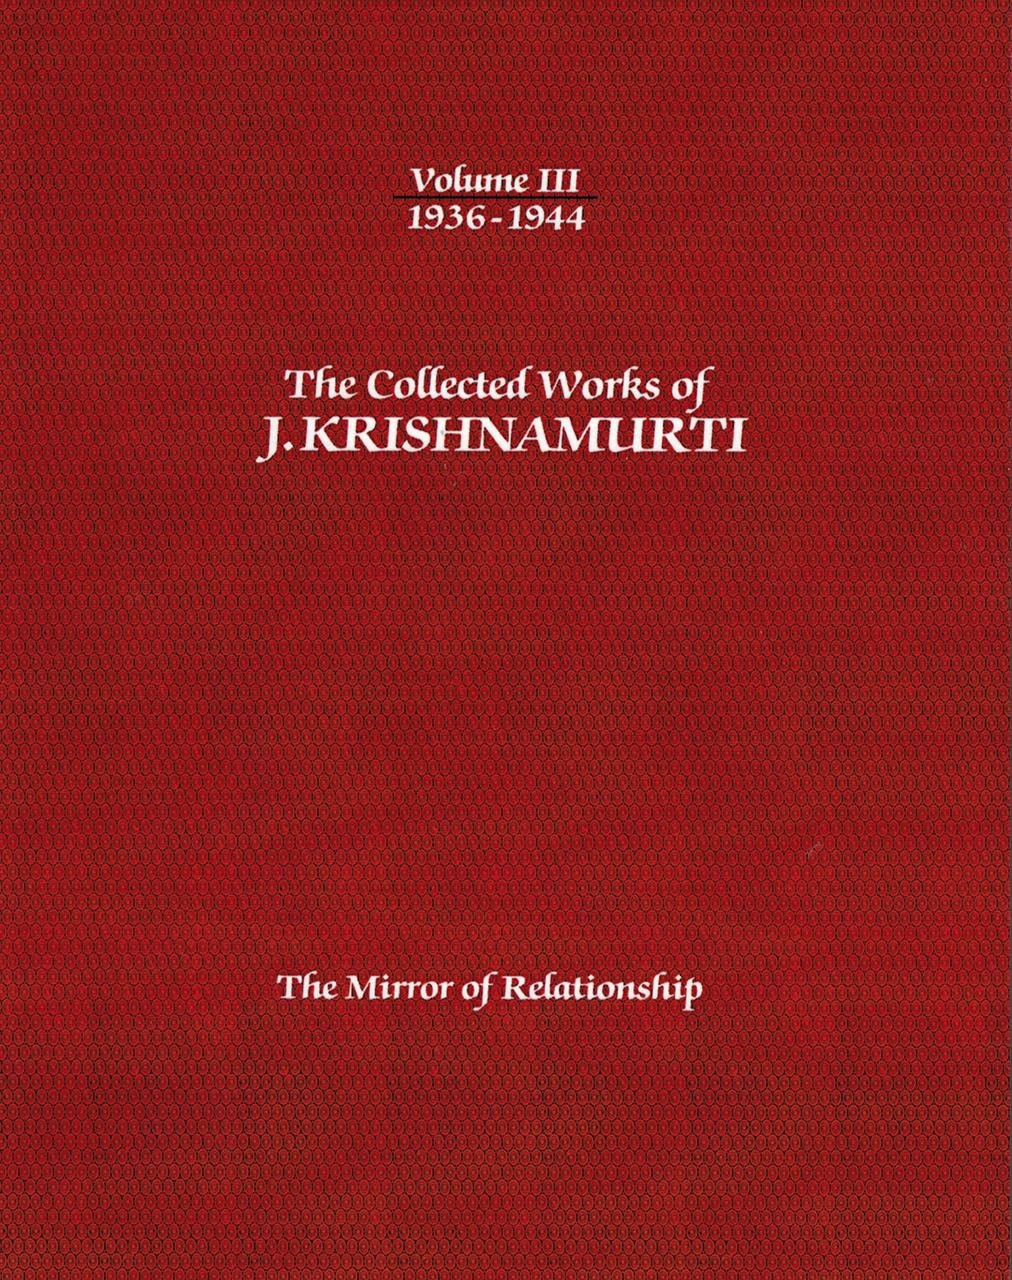 The Collected Works of J.Krishnamurti - Volume III 1936-1944: The Mirror Of Relationship pdf